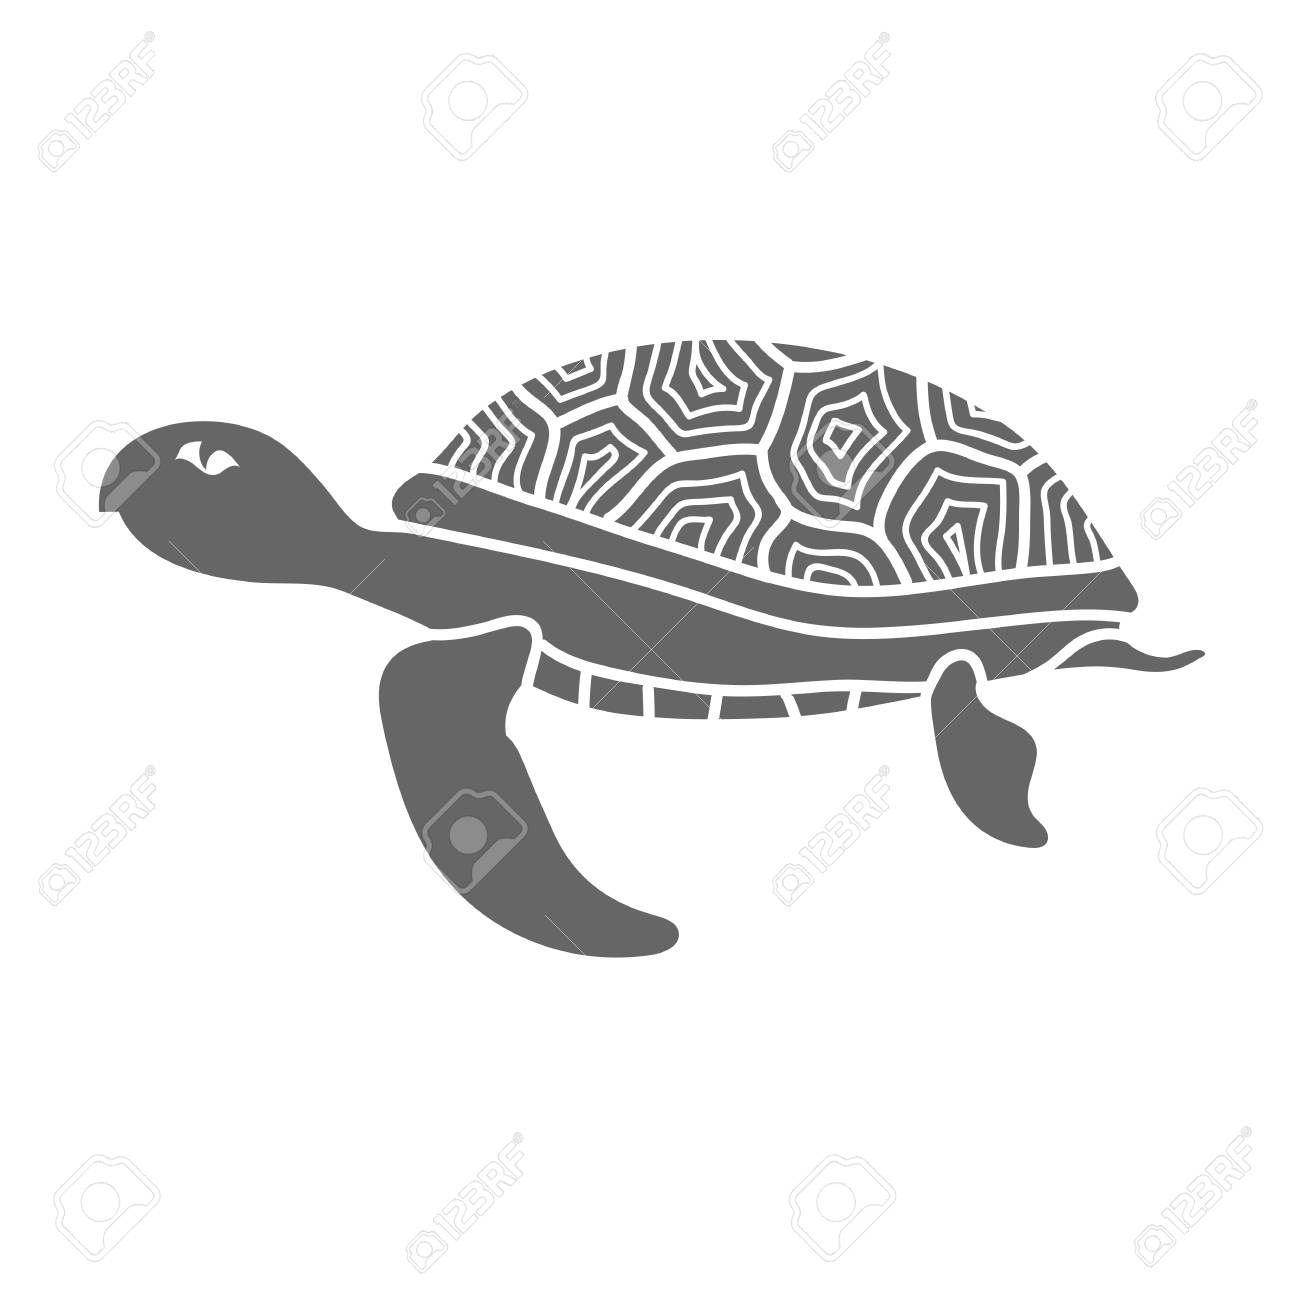 d096526b6 Ocean Turtle Icon Isolated on White Background. Sea Graphic Simple Animal  Logo. Stock Photo